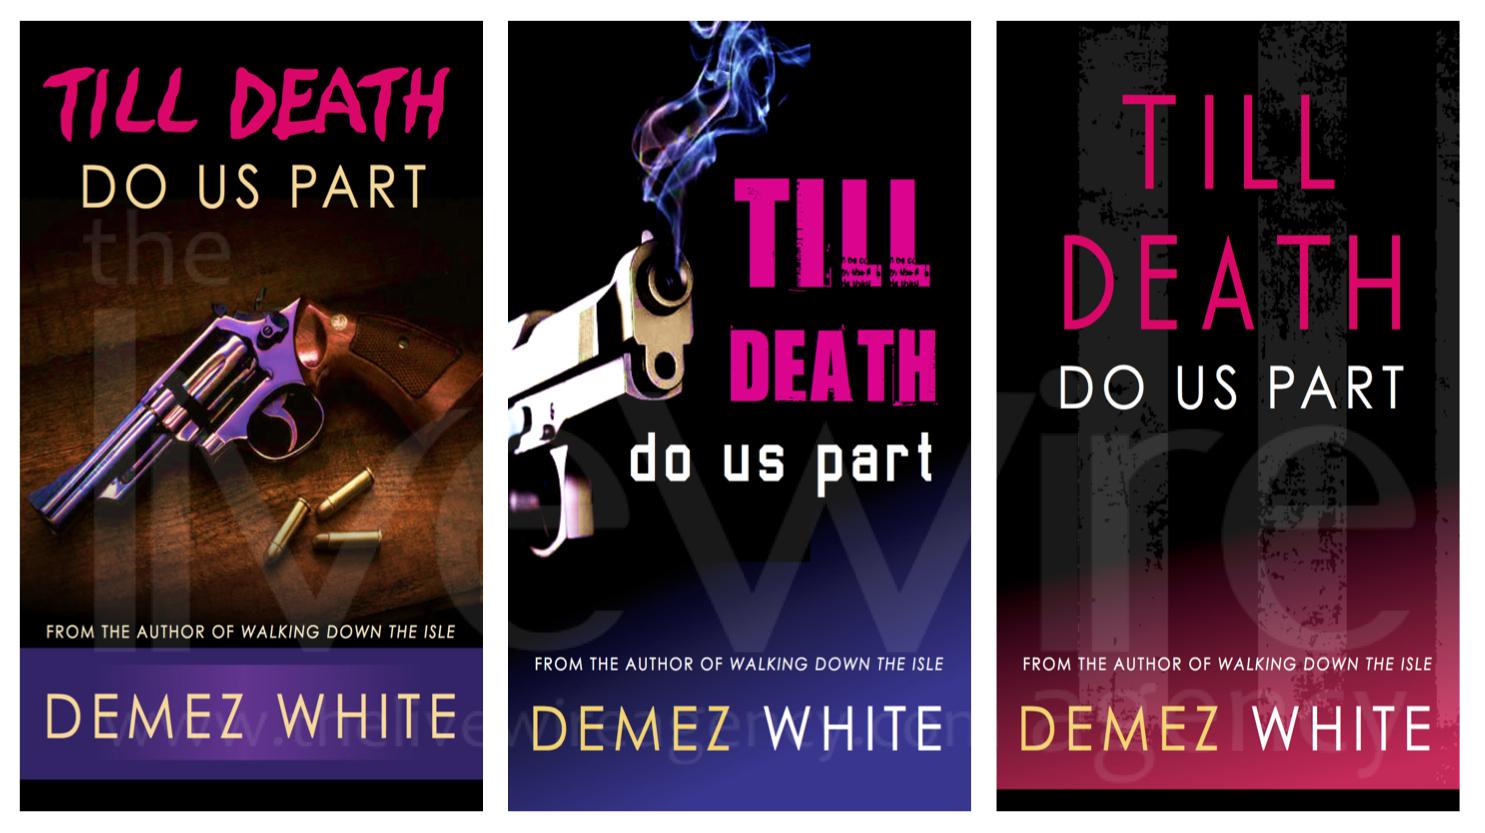 Till Death Book Cover Samples